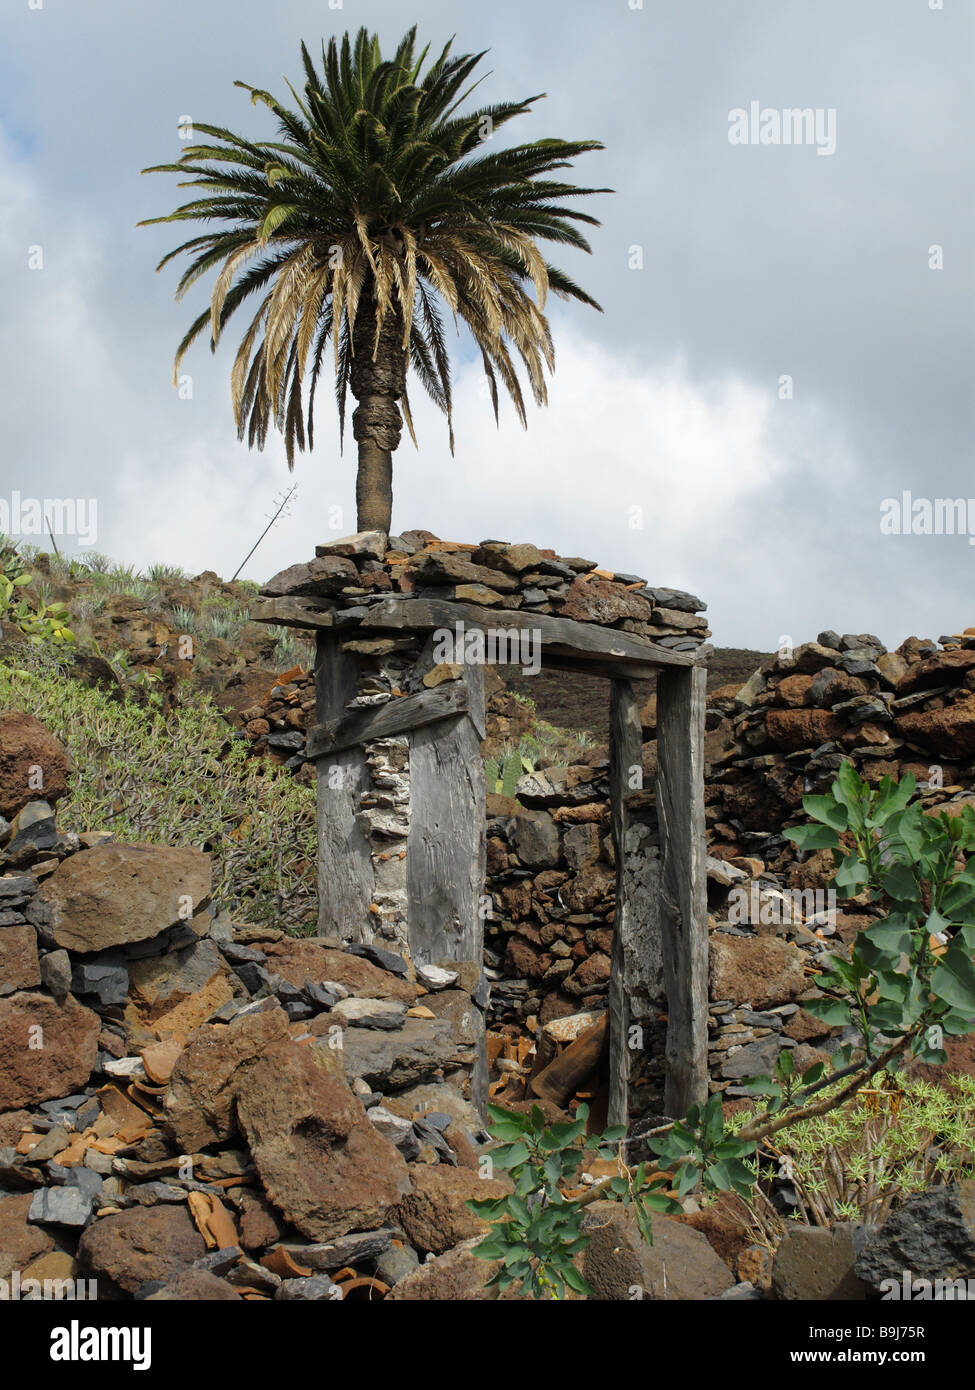 Doorframe of a ruin and a palm tree in Contreras near Playa Santiago, La Gomera, Canary Islands, Spain, Europe - Stock Image